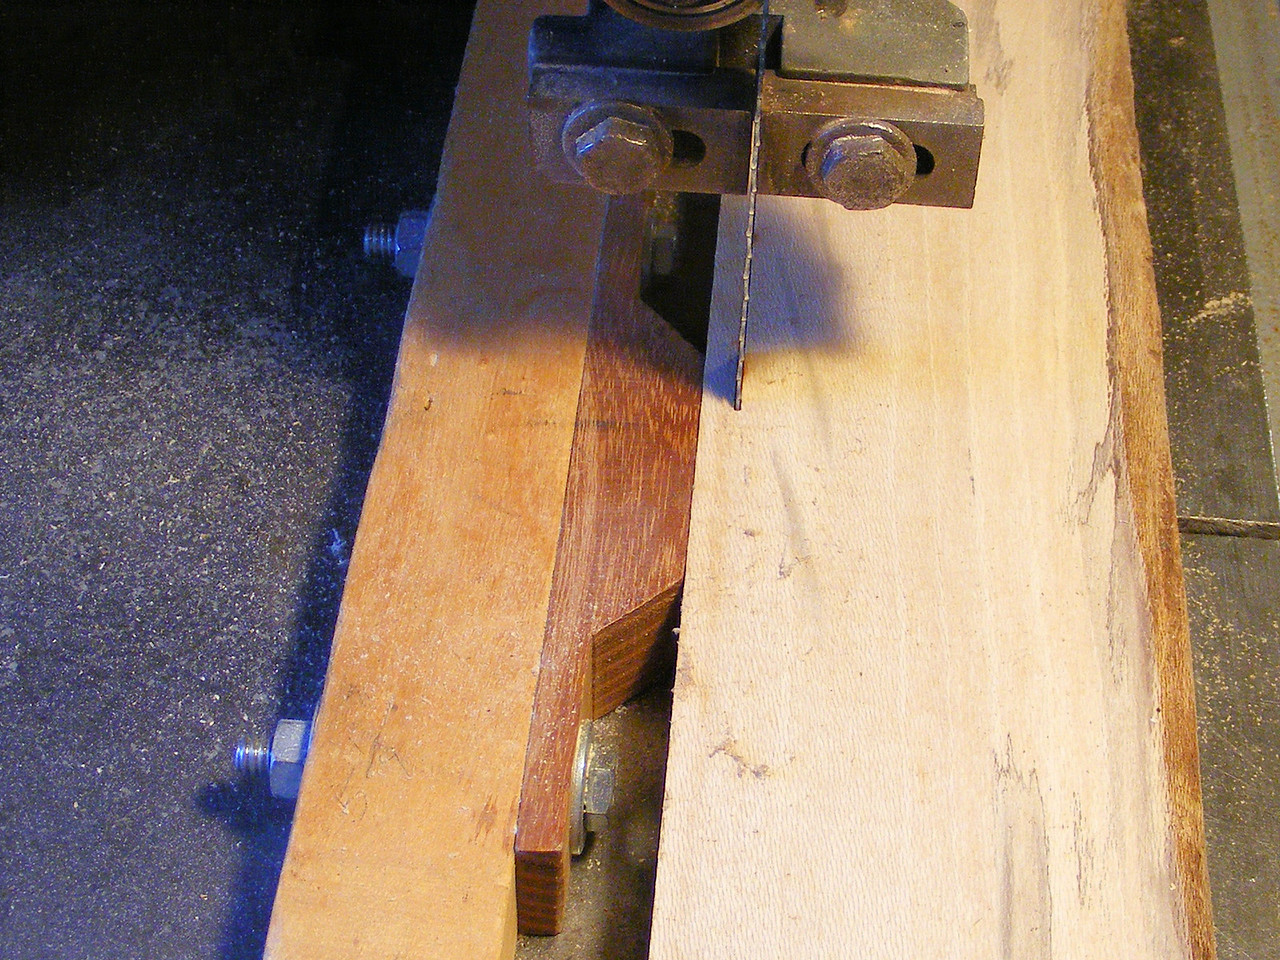 "1 - Making a Tumbling Block Cribbage Board <br /> I needed to make some more of my Tumbling Block Cribbage Boards and I needed more strips of different kinds of wood that I cut the pieces from. I put a short block of wood on the fence so if the board has any curve to it, the longer fence would make the strip have a thin part to it, the short block will let the strip keep that curve. When I cut the pieces, that slight curve will not be a factor. I want the whole strip to be .200 end to end. The pieces will then all be of a uniform thickness and I can know that I can get 4 strips of wood for every inch the starting board is wide. If I have a board 6"" wide I will end up with 24 strips from that board. I will cut my boards close to 24"" long and for my regular diamonds and triangles; I will get 20 diamonds and 28 triangles."